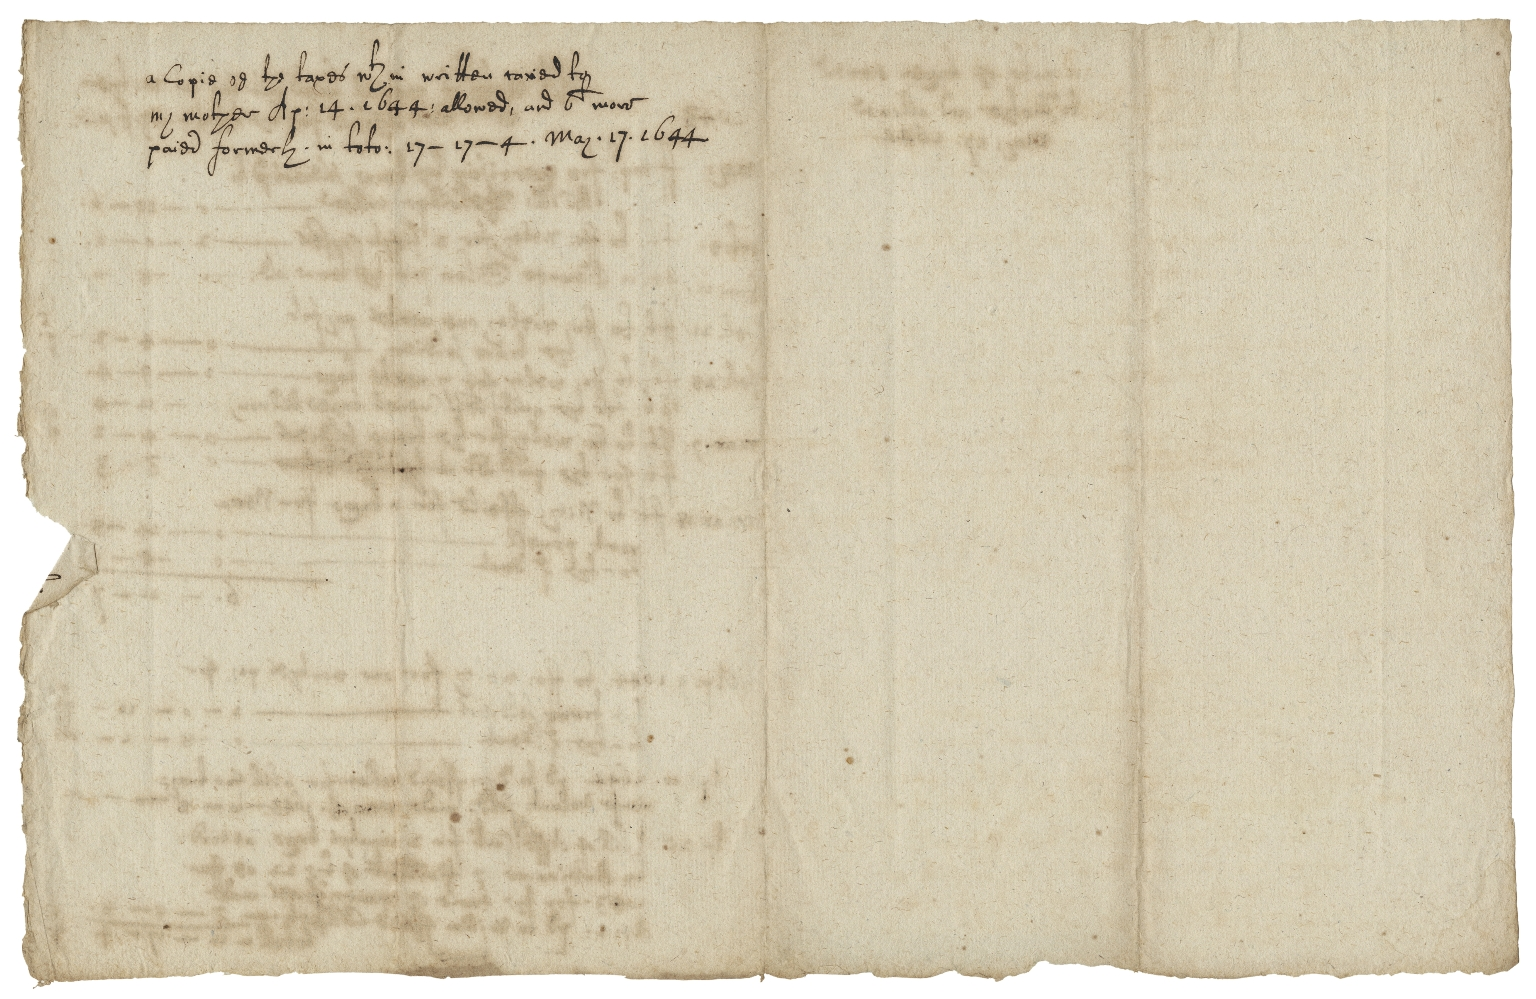 Account of taxes laid out for Rose Hale